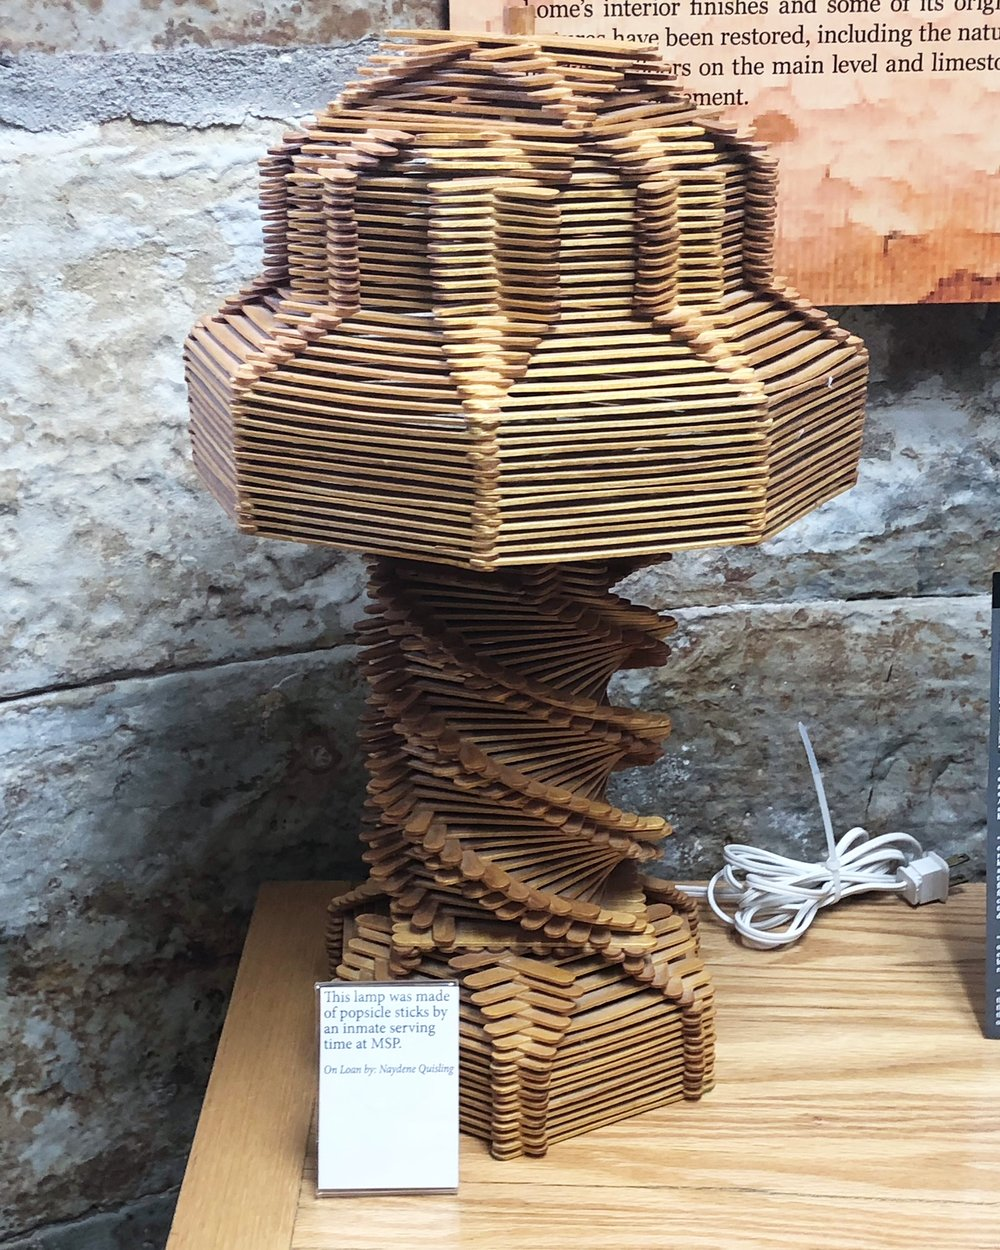 Lamp made from popsicle sticks by MSP inmate, displayed in museum